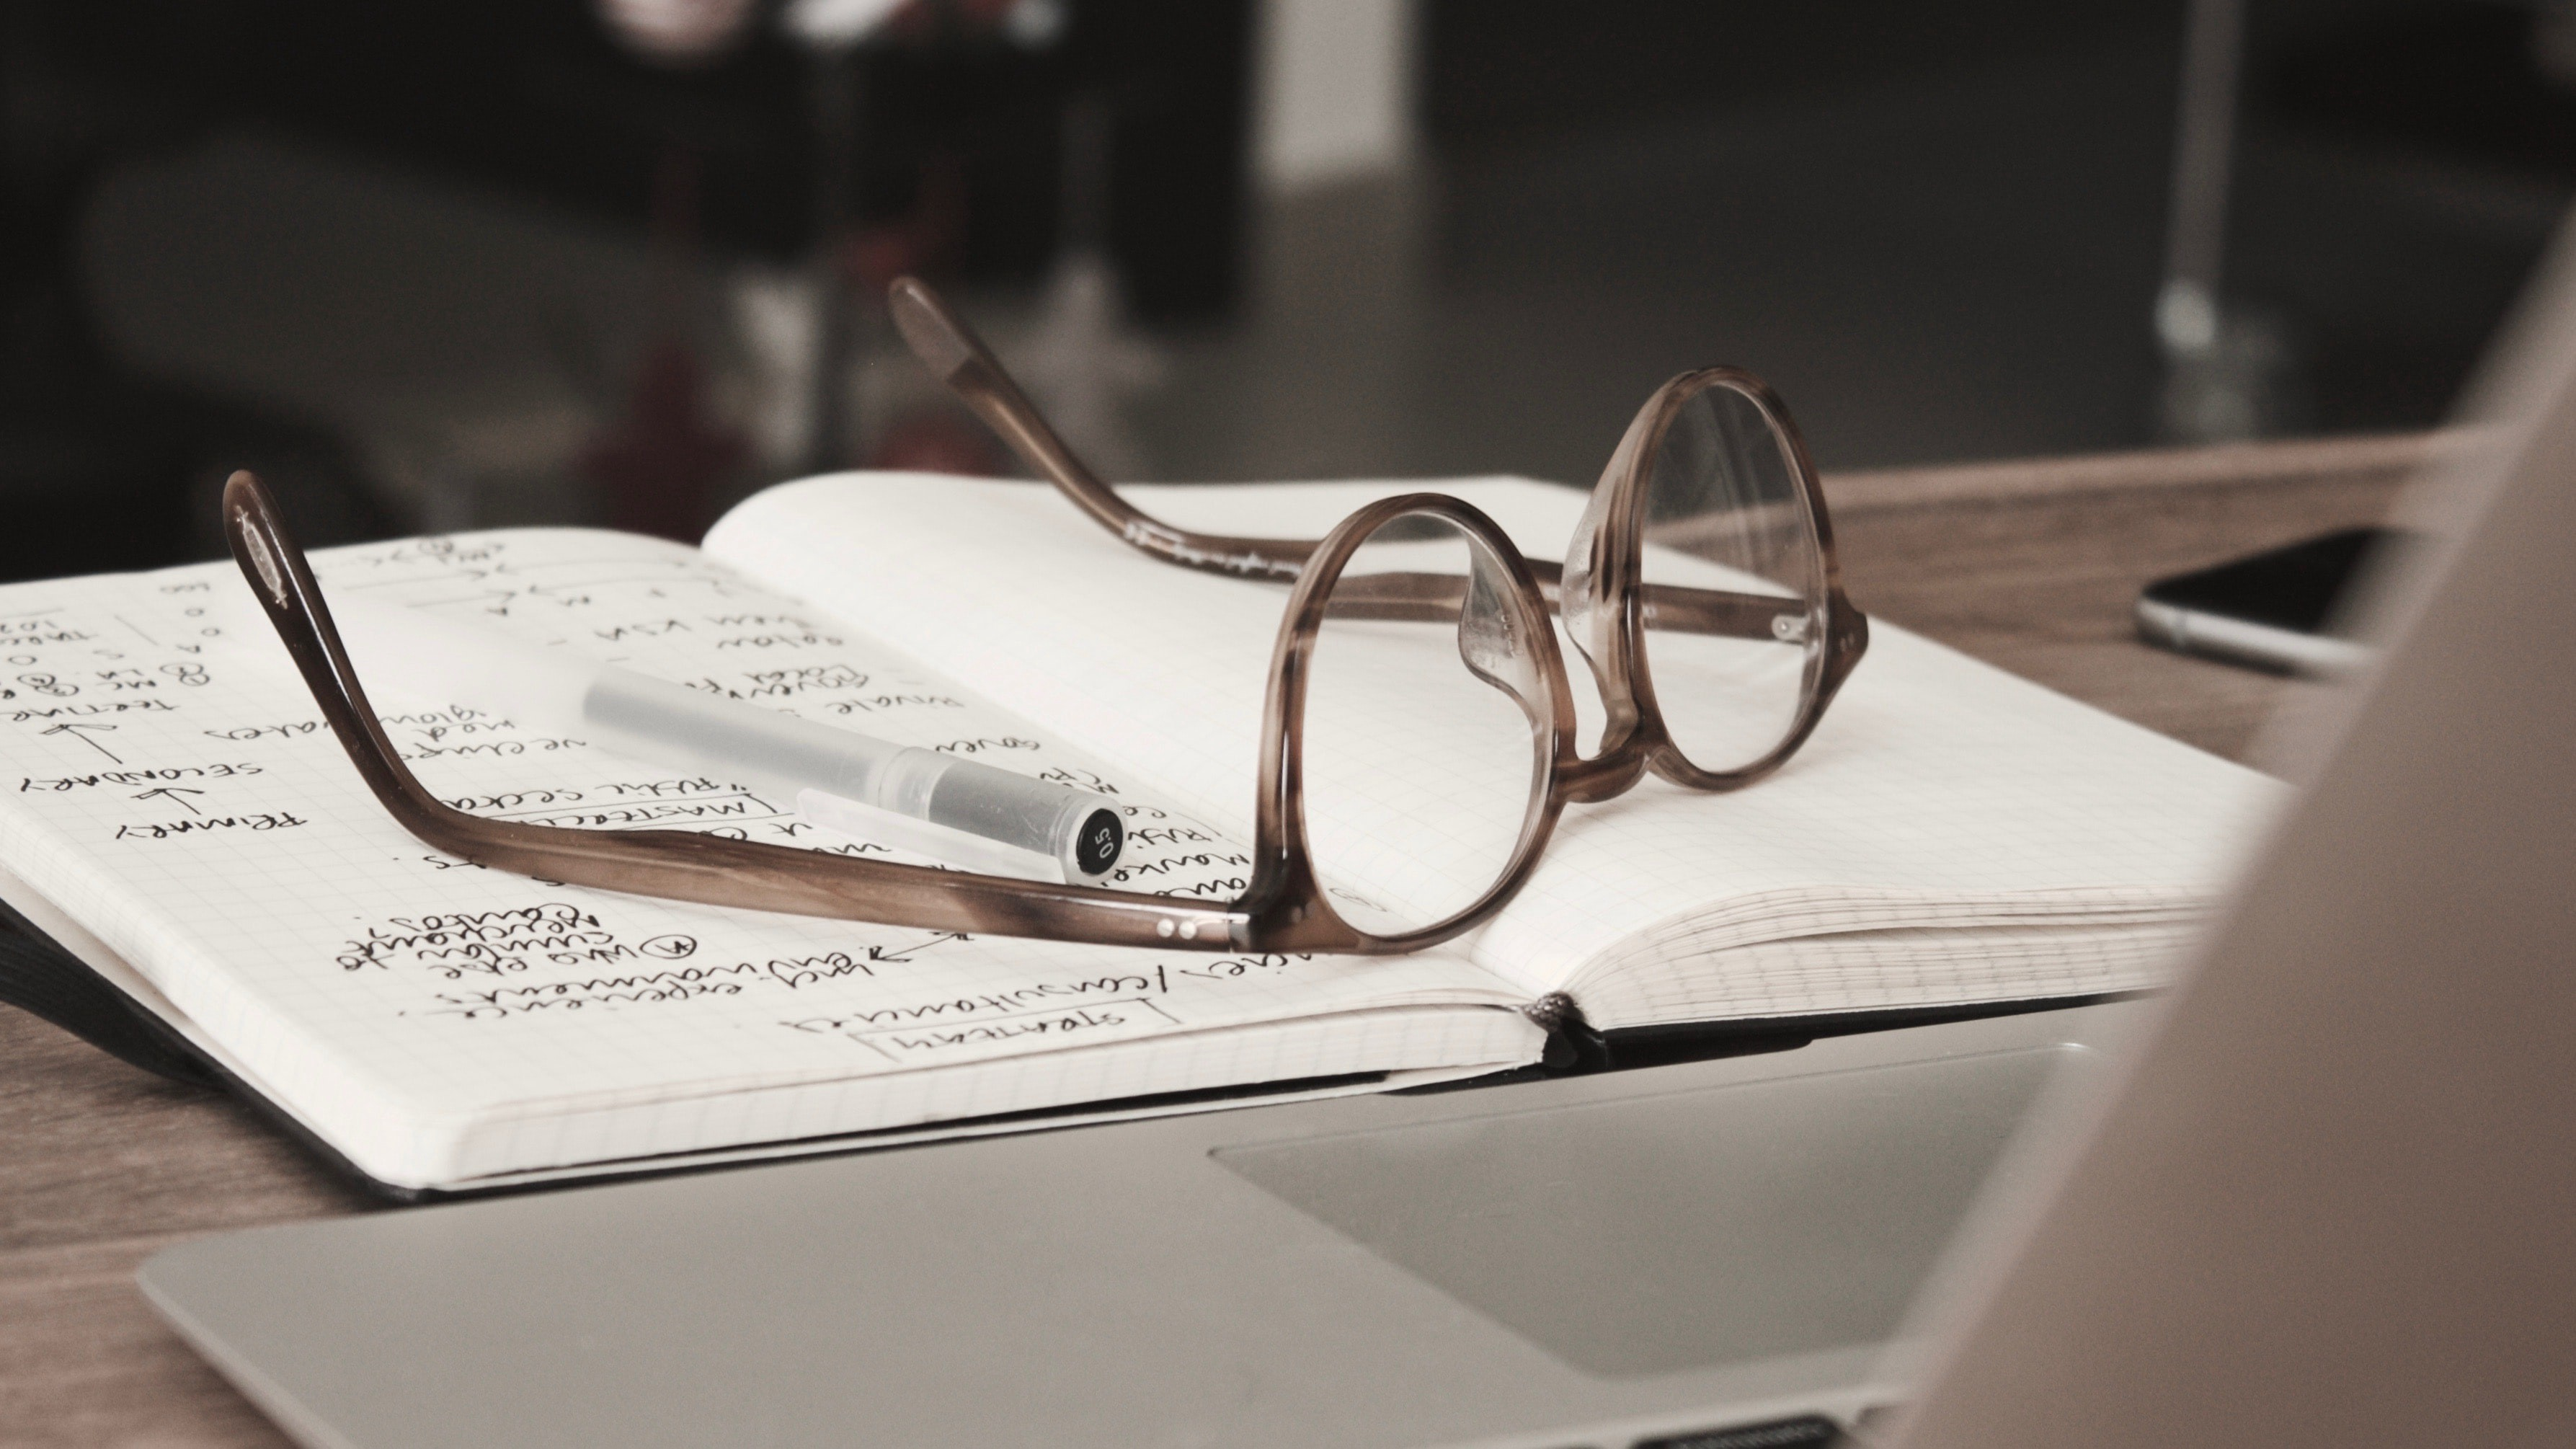 reading glasses and open pen on top of a planner next to a laptop